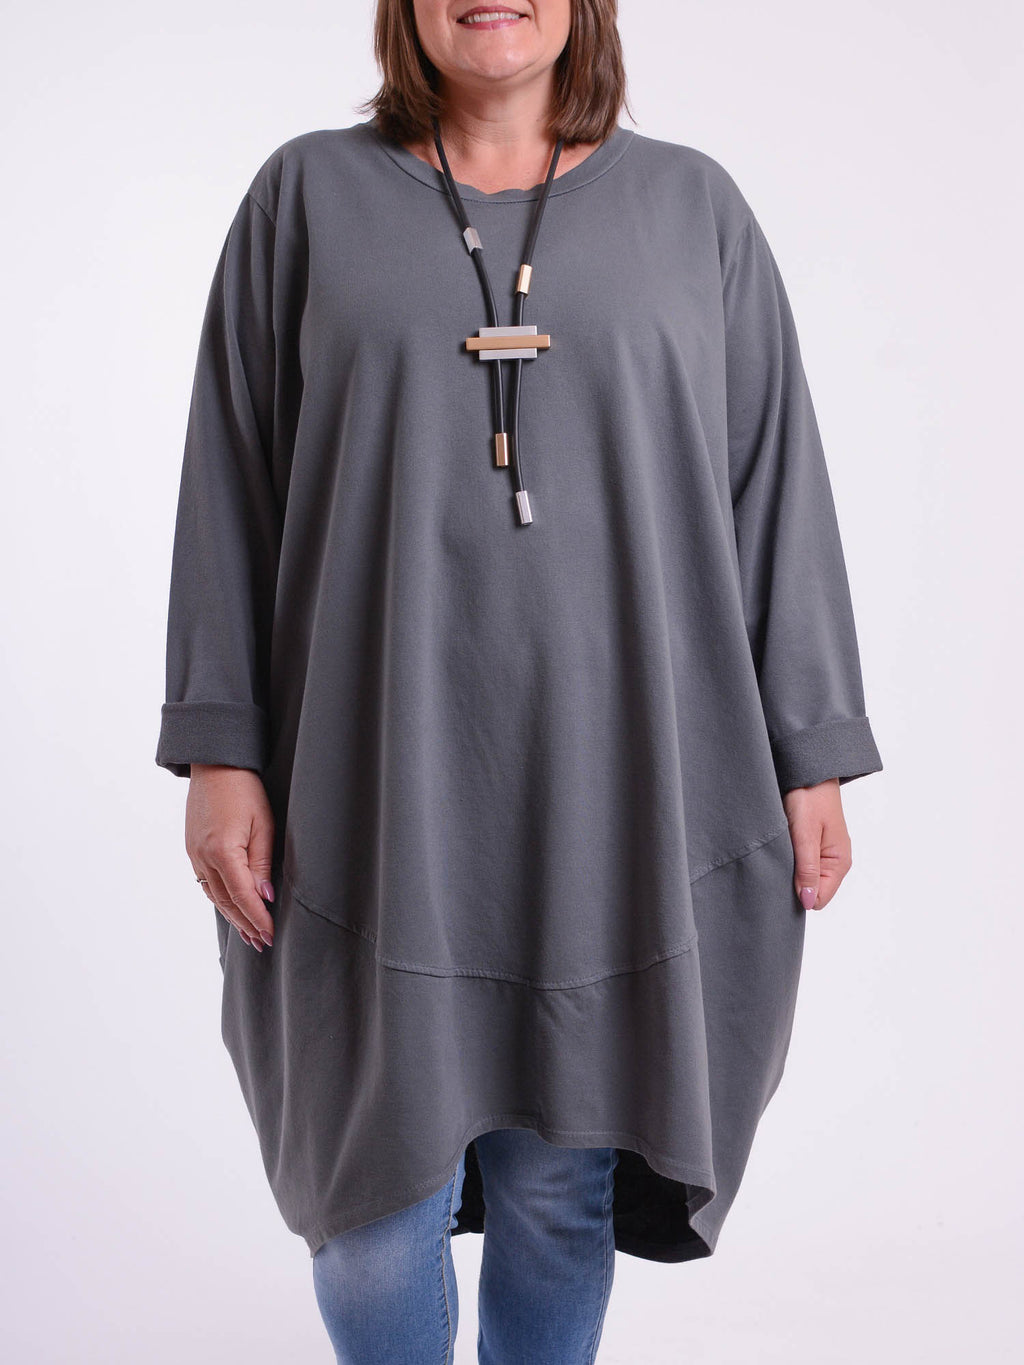 Oversized Cocoon Tunic  - 10517 - Pure Plus Clothing